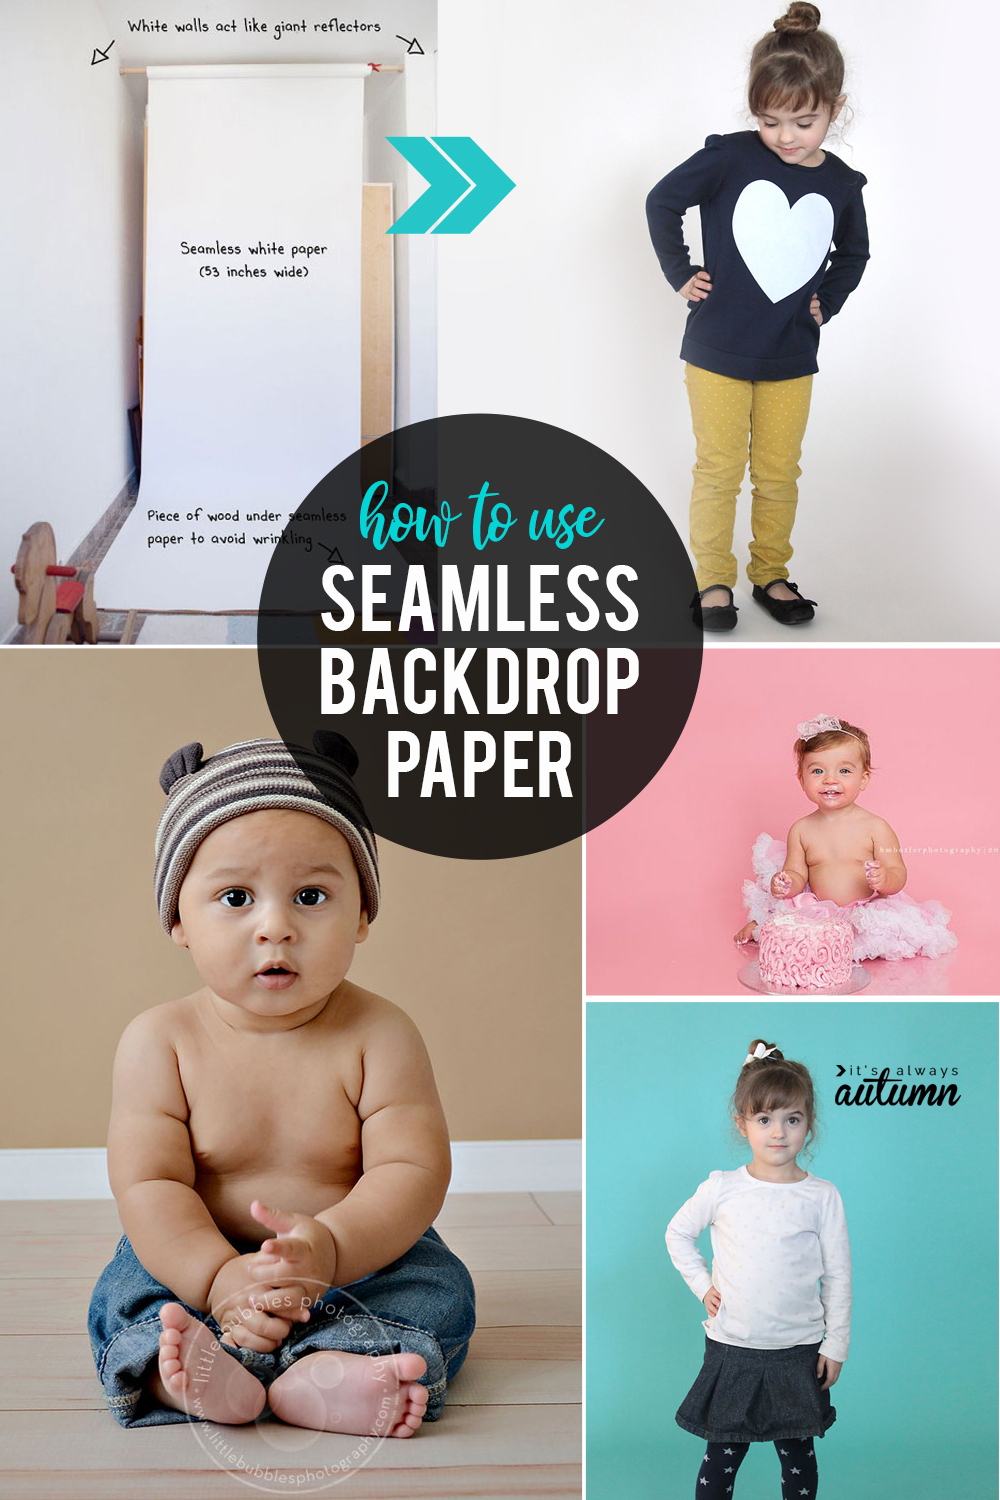 How to use seamless backdrop paper for beautiful, professional looking photos at home.